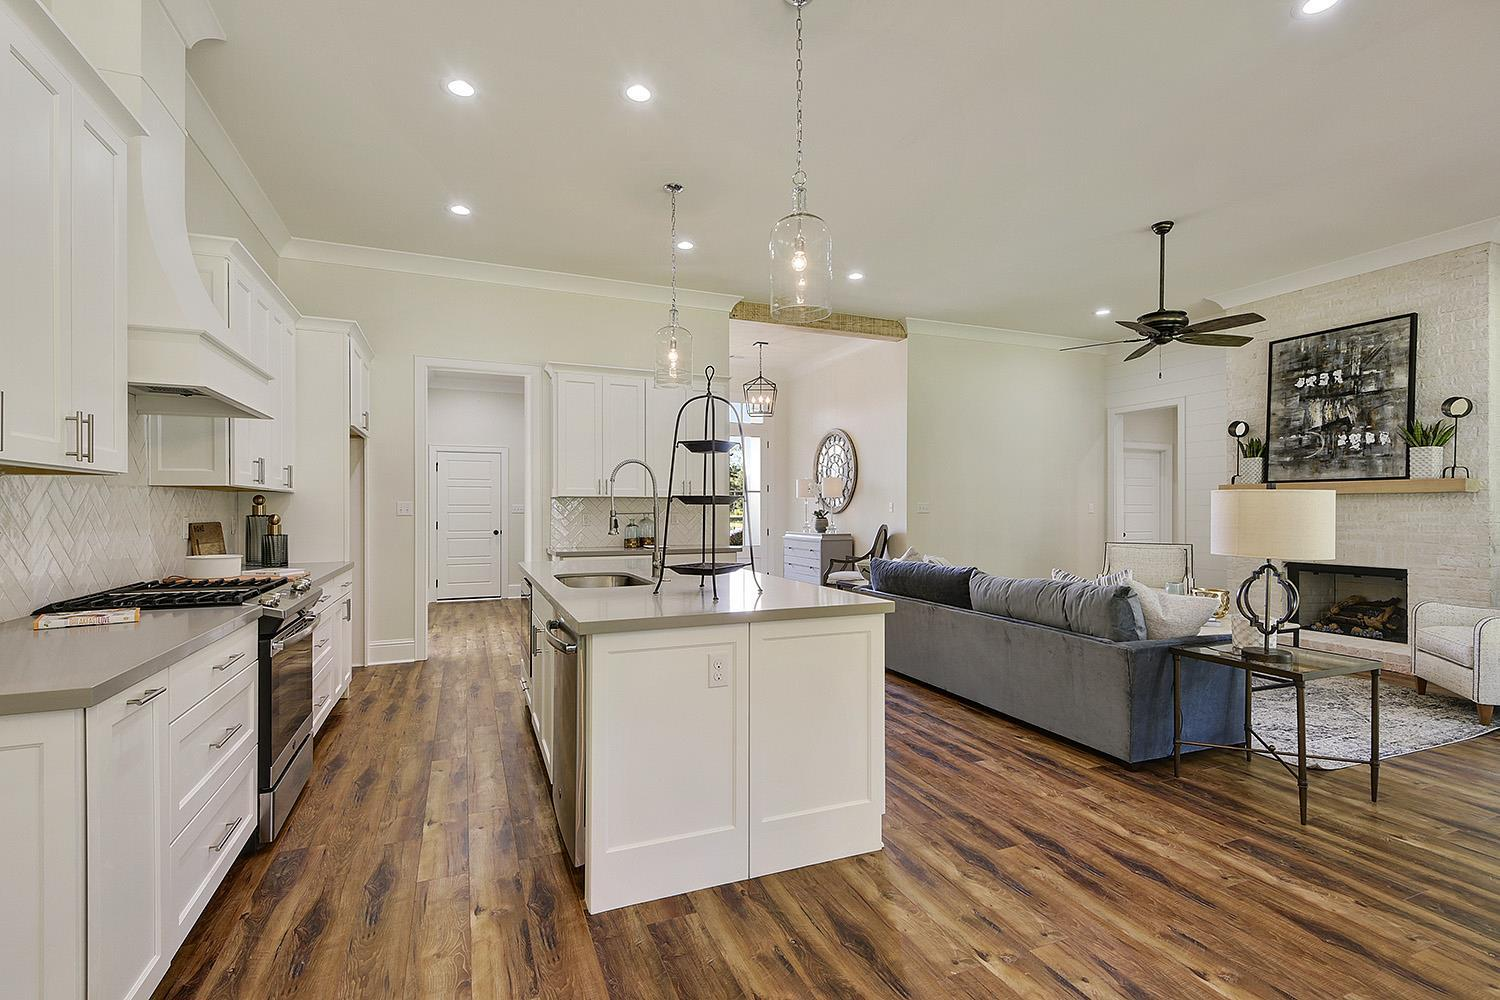 Kitchen featured in the Andre By Highland Homes in New Orleans, LA